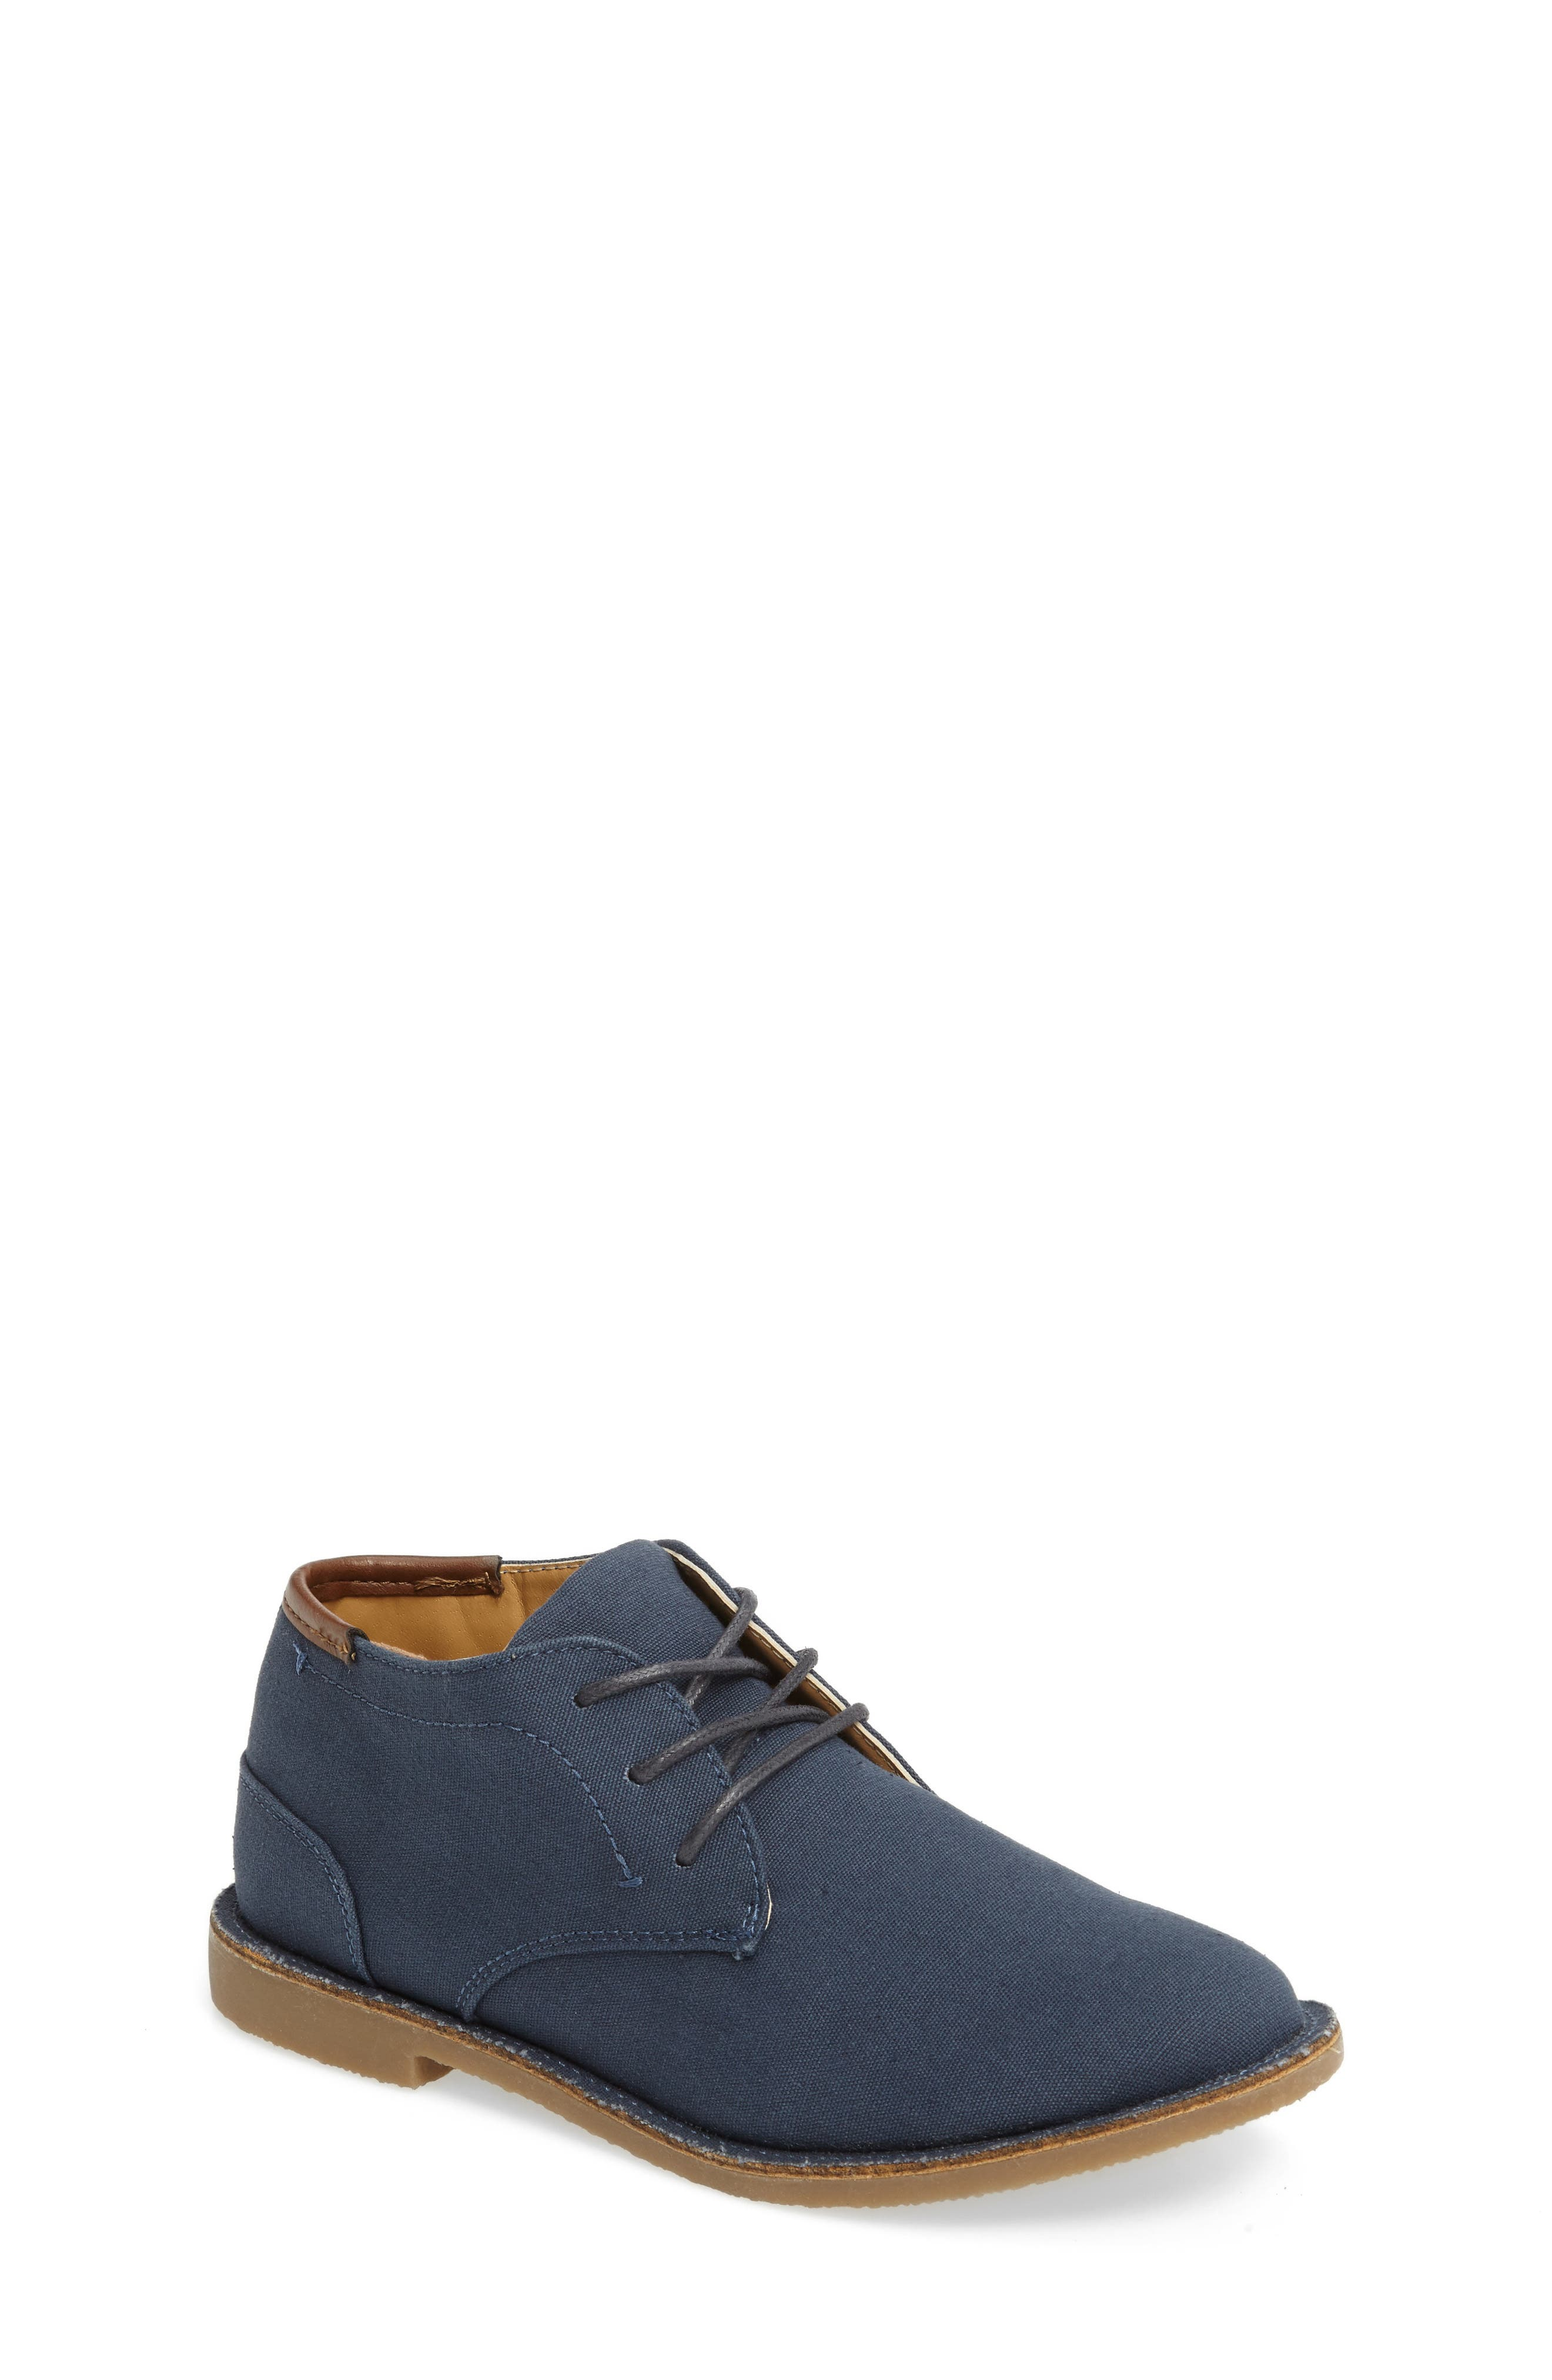 Boys Kenneth Cole New York Real Deal Chukka Boot Size 5 M  Blue